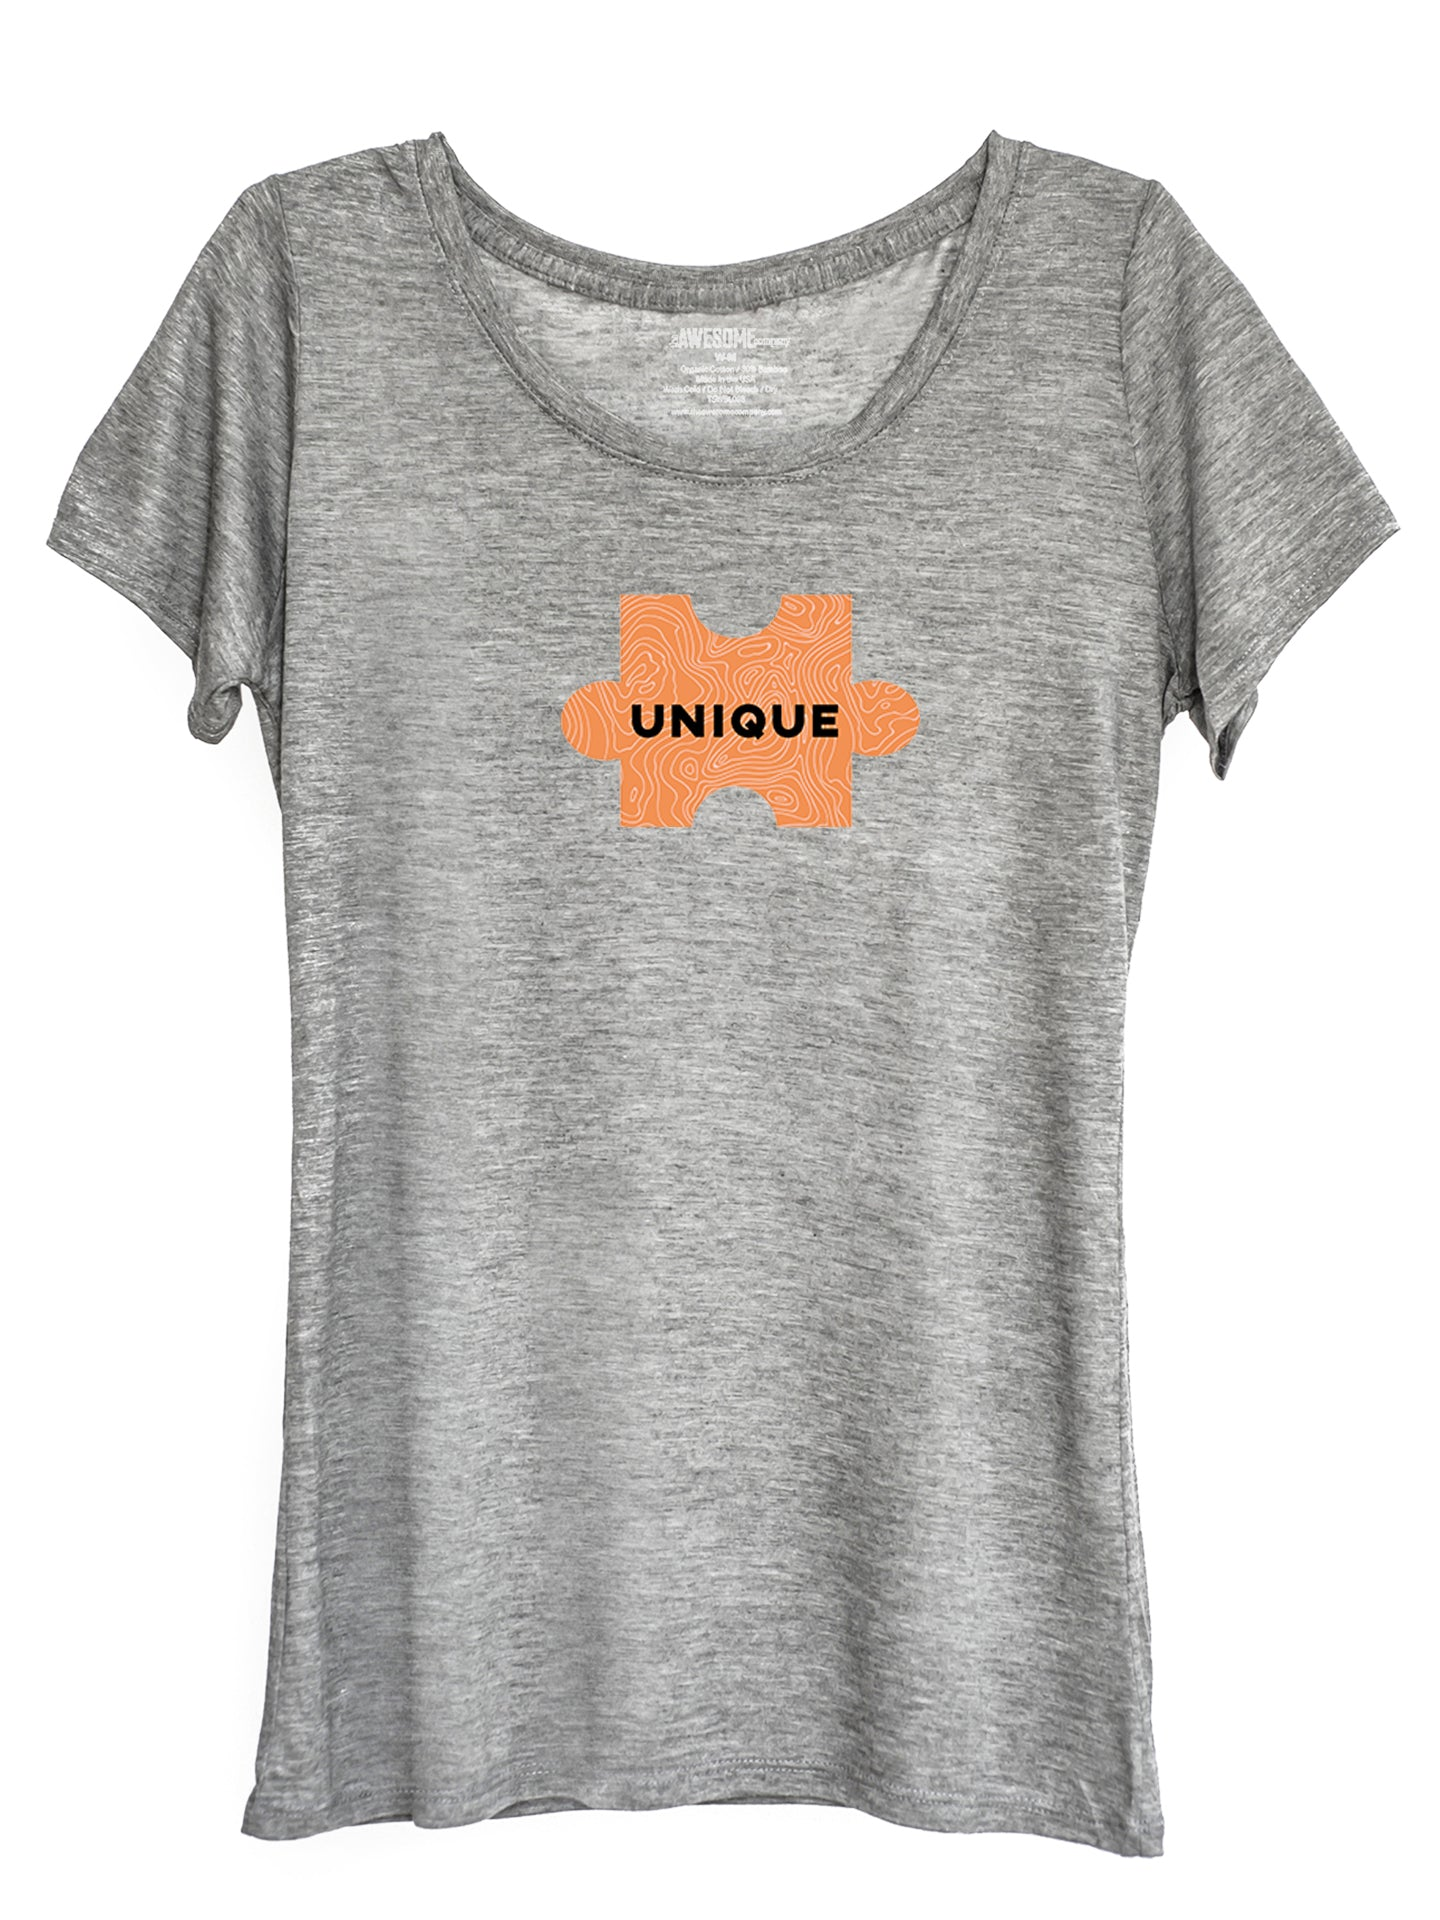 The Power of Words - Women's Tee - Puzzle Pieces - UNIQUE